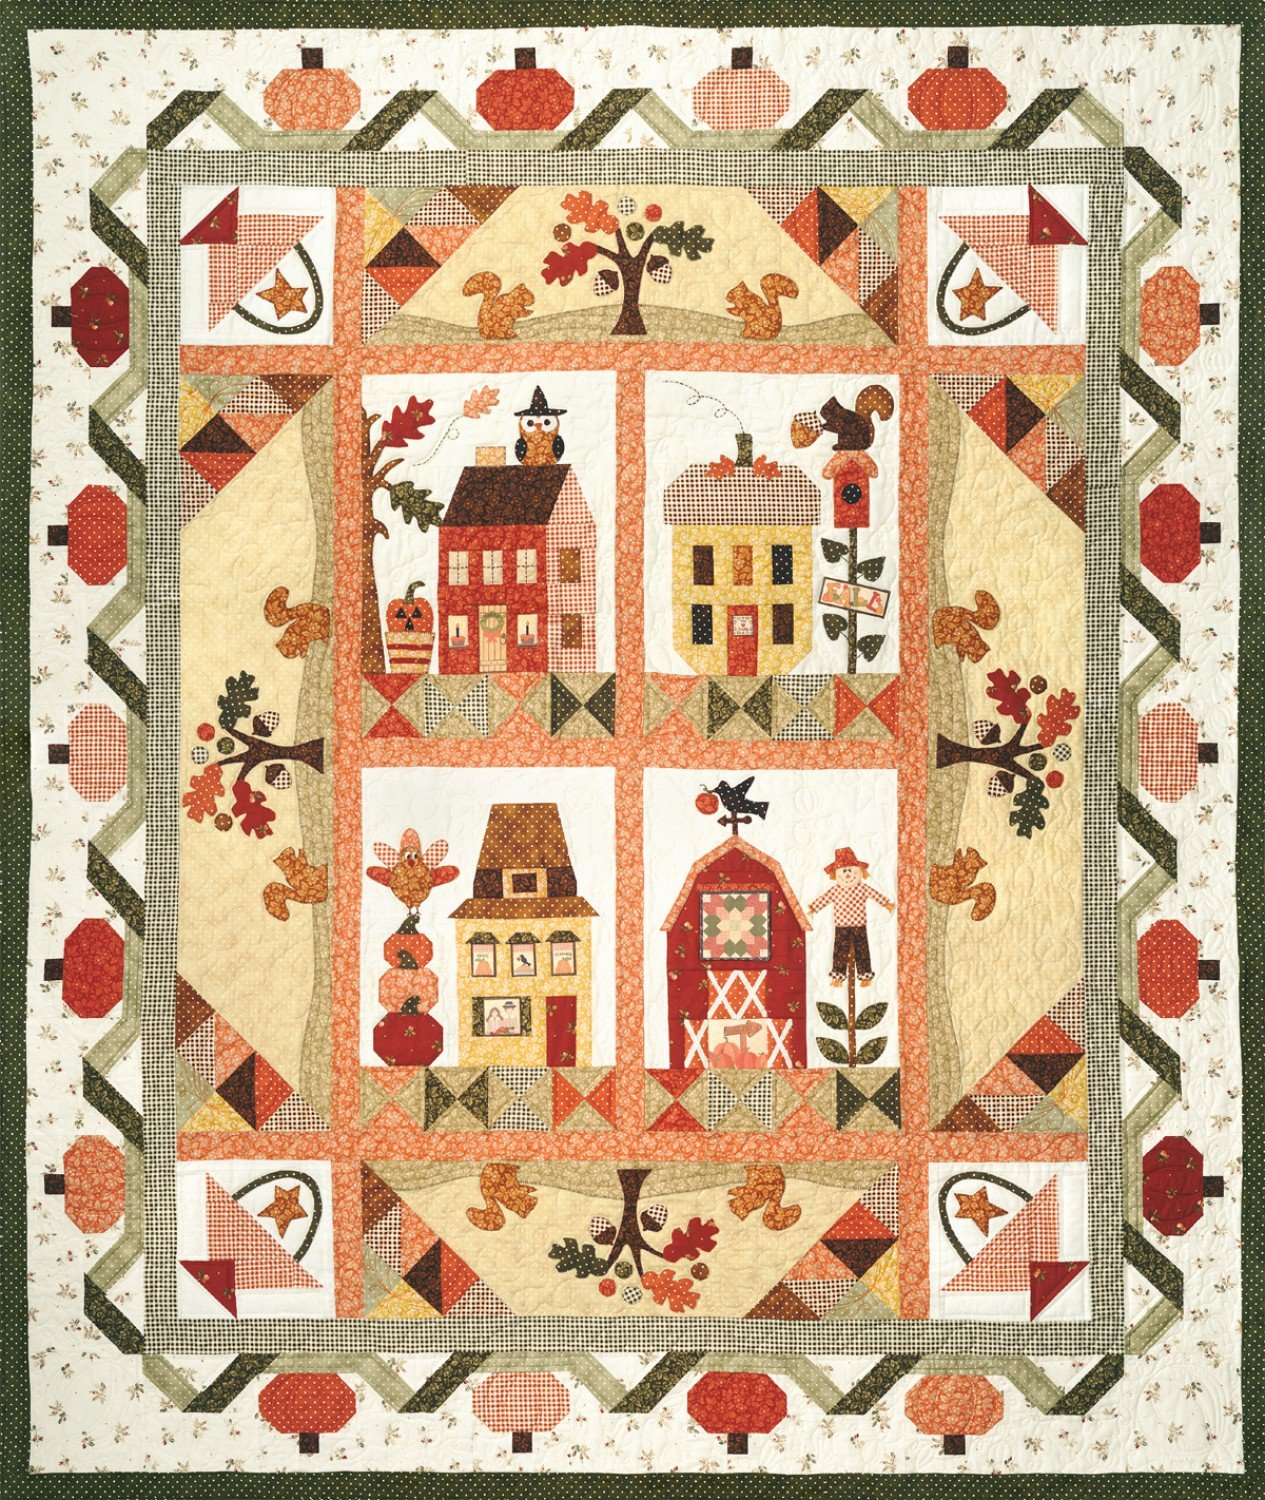 Pumpkin Patch Lane Halloween Autumn Fall The Quilt Company Pattern Set of 6 by Quilt